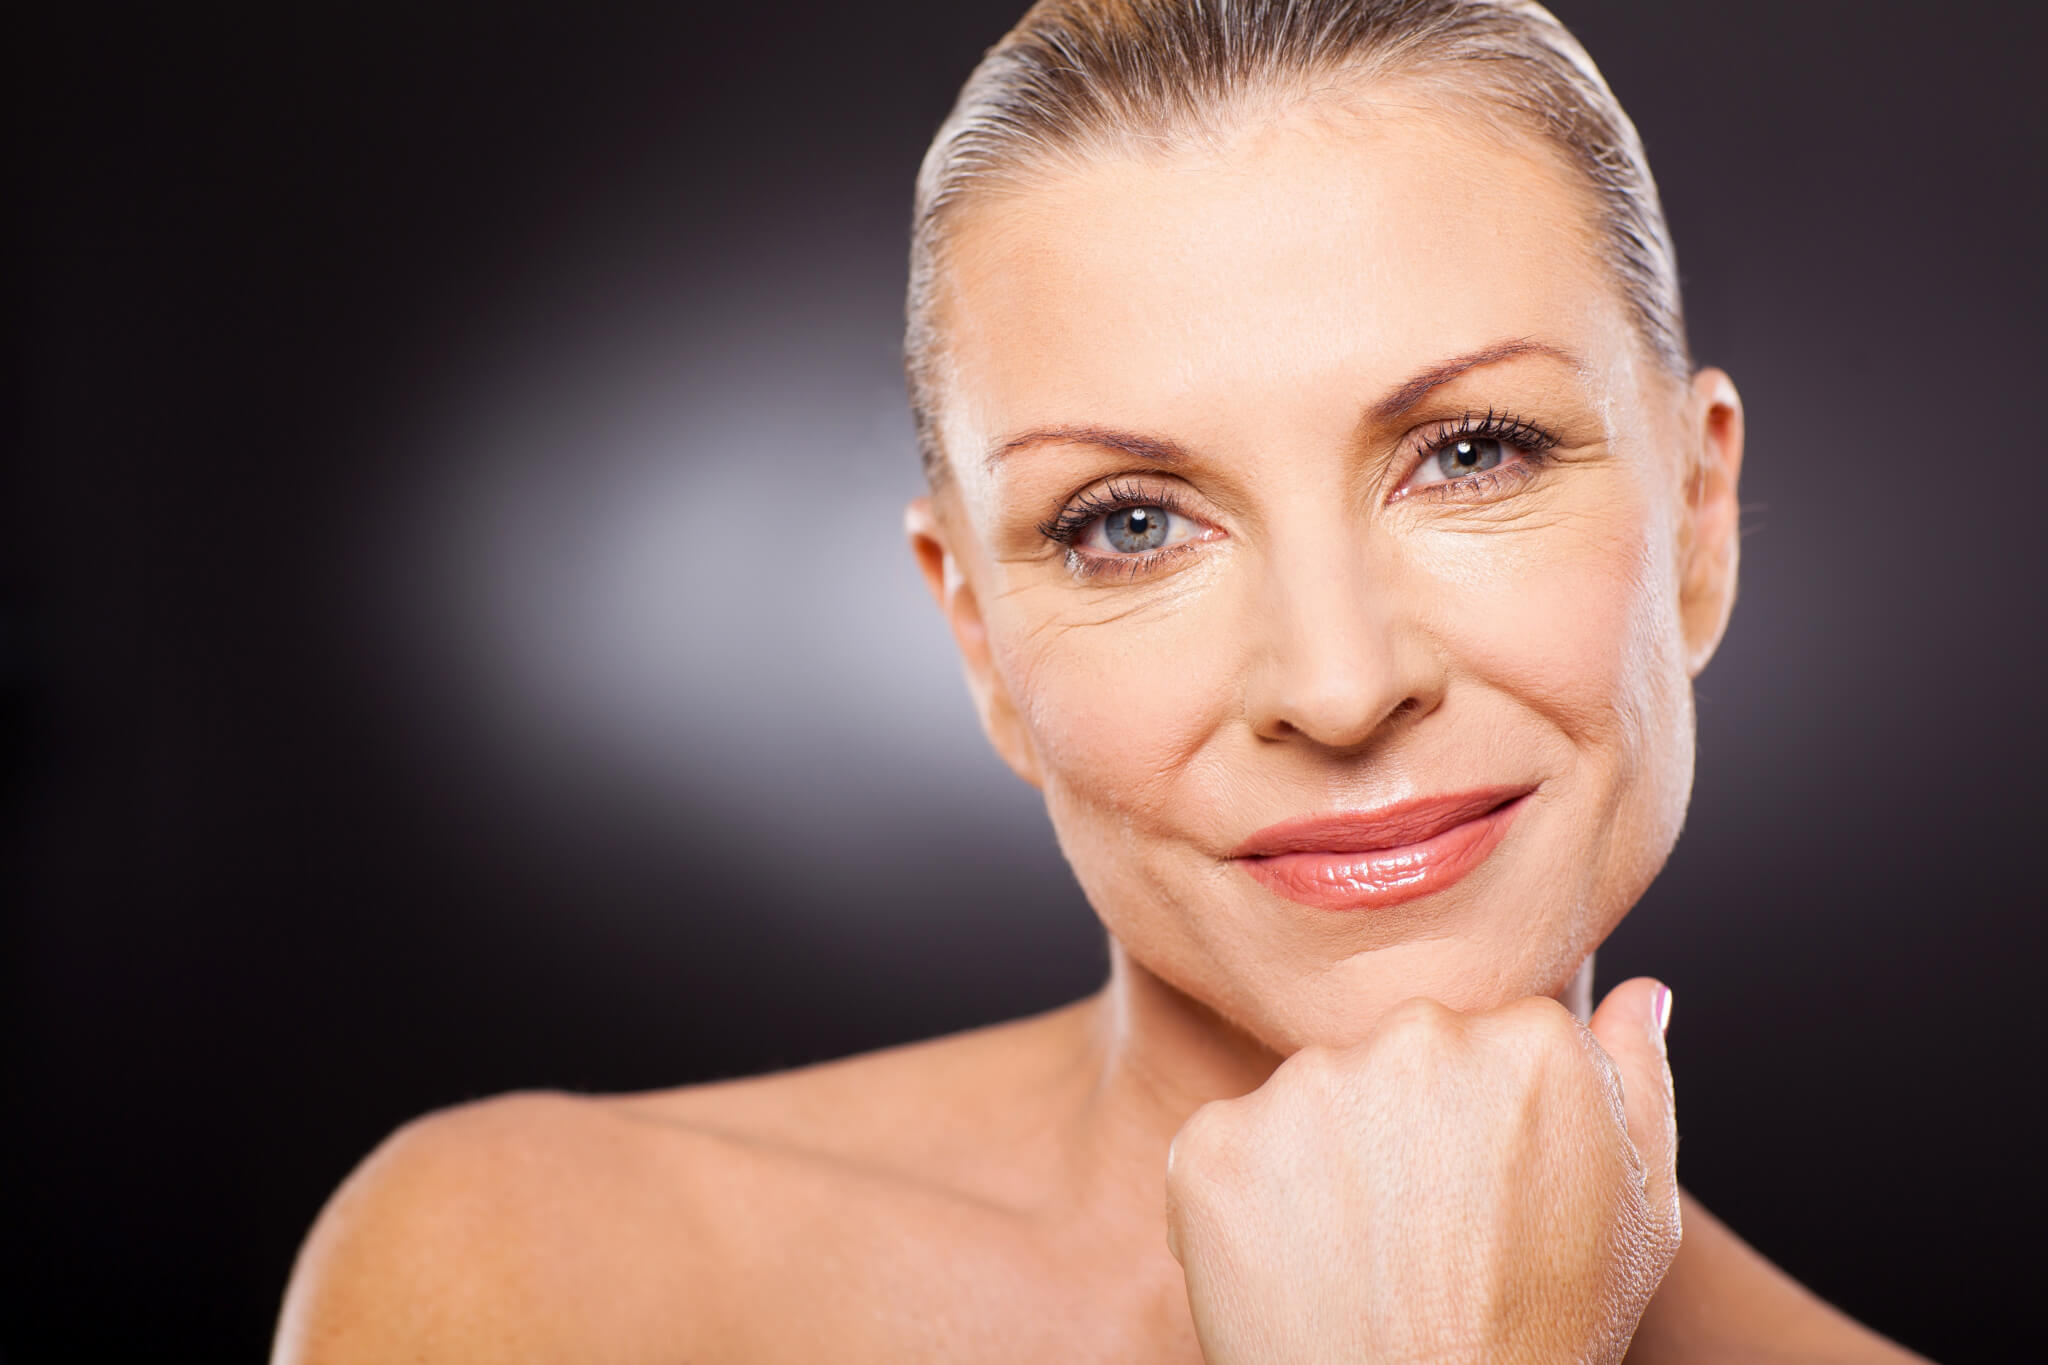 Bellafill and Pixel8 RF Microneedling can make a beautiful combination to look younger longer